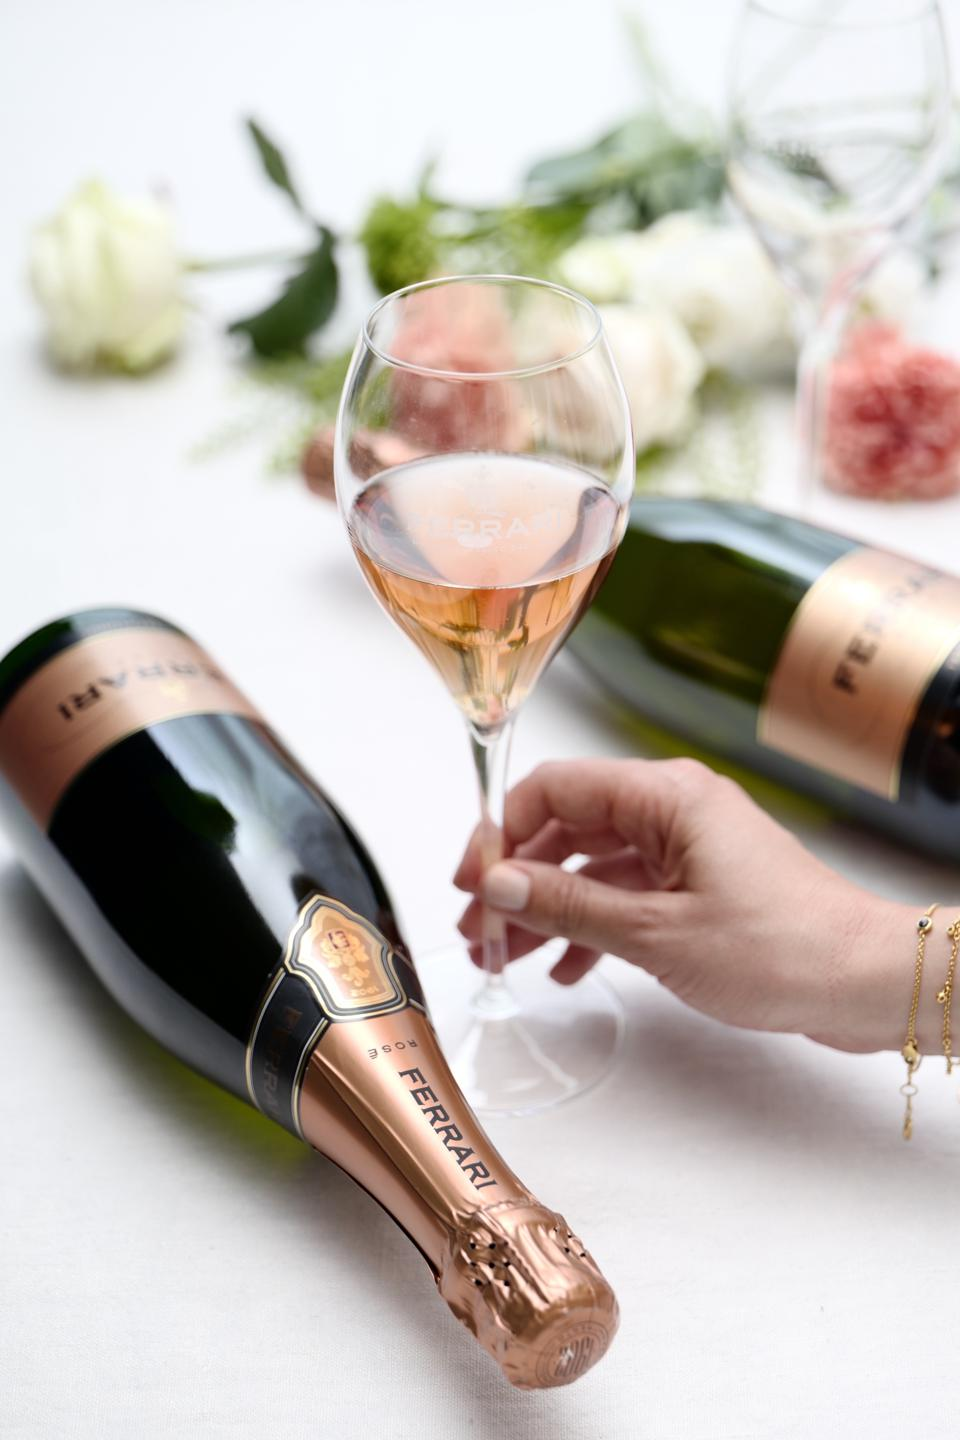 A woman holds a glass of Ferrari Trento sparkling rosé in between two bottles.